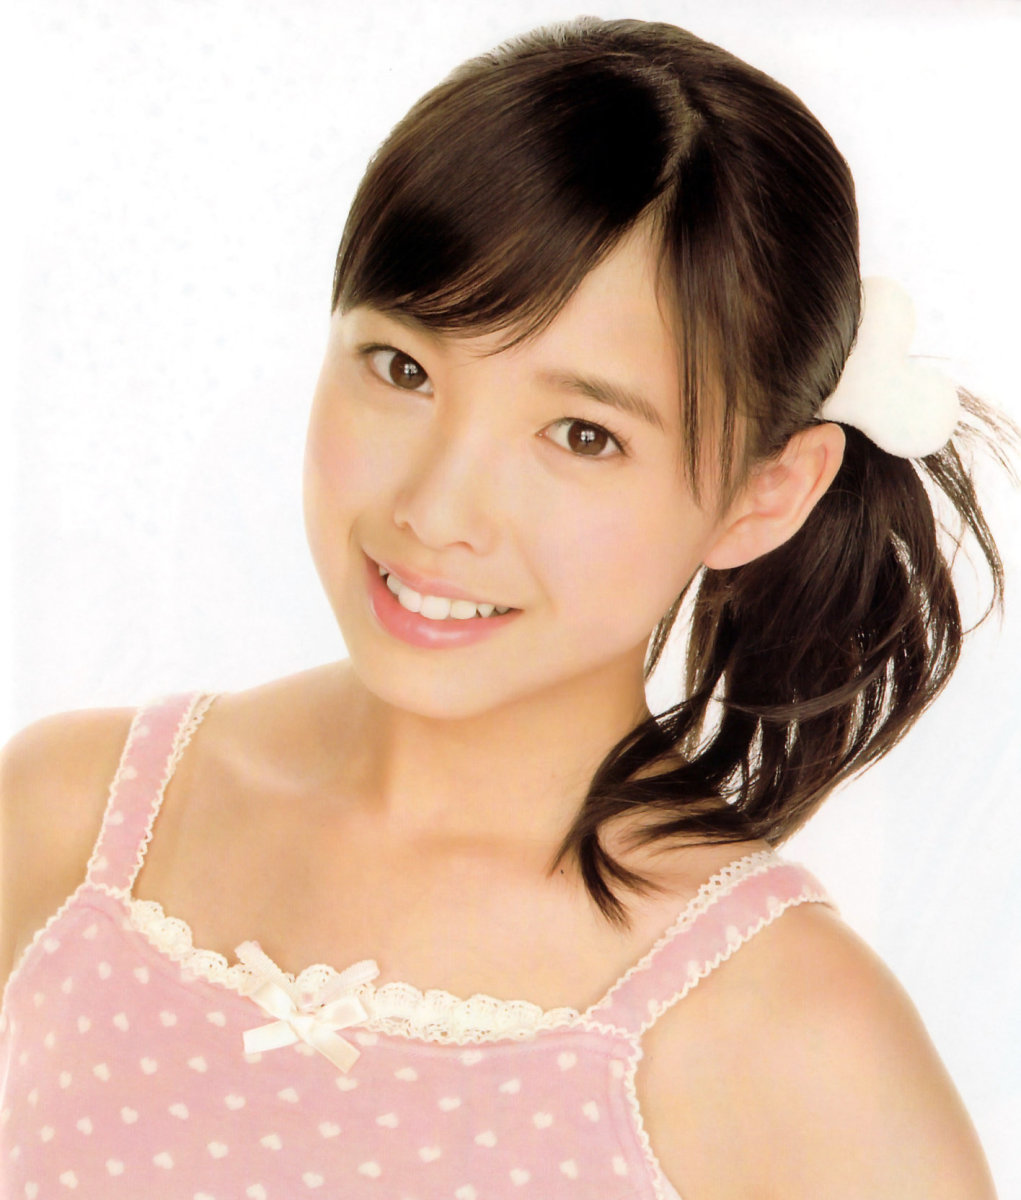 Idol singer Saki Nakajima is here at the age of 13. This photo was taken after the release of the group's 2007 single called Sakura Chirari.